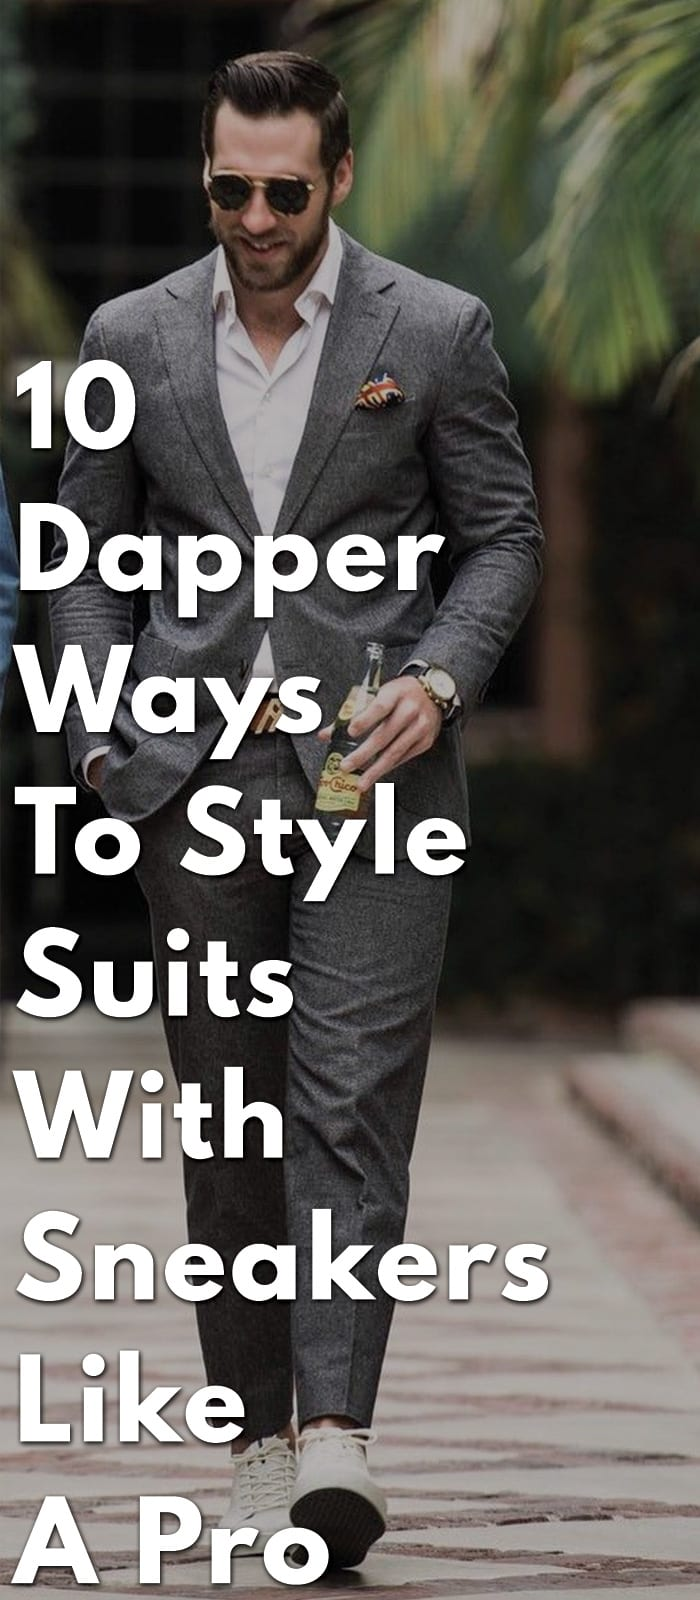 10-Dapper-Ways-To-Style-Suits-With-Sneakers-Like-A-Pro